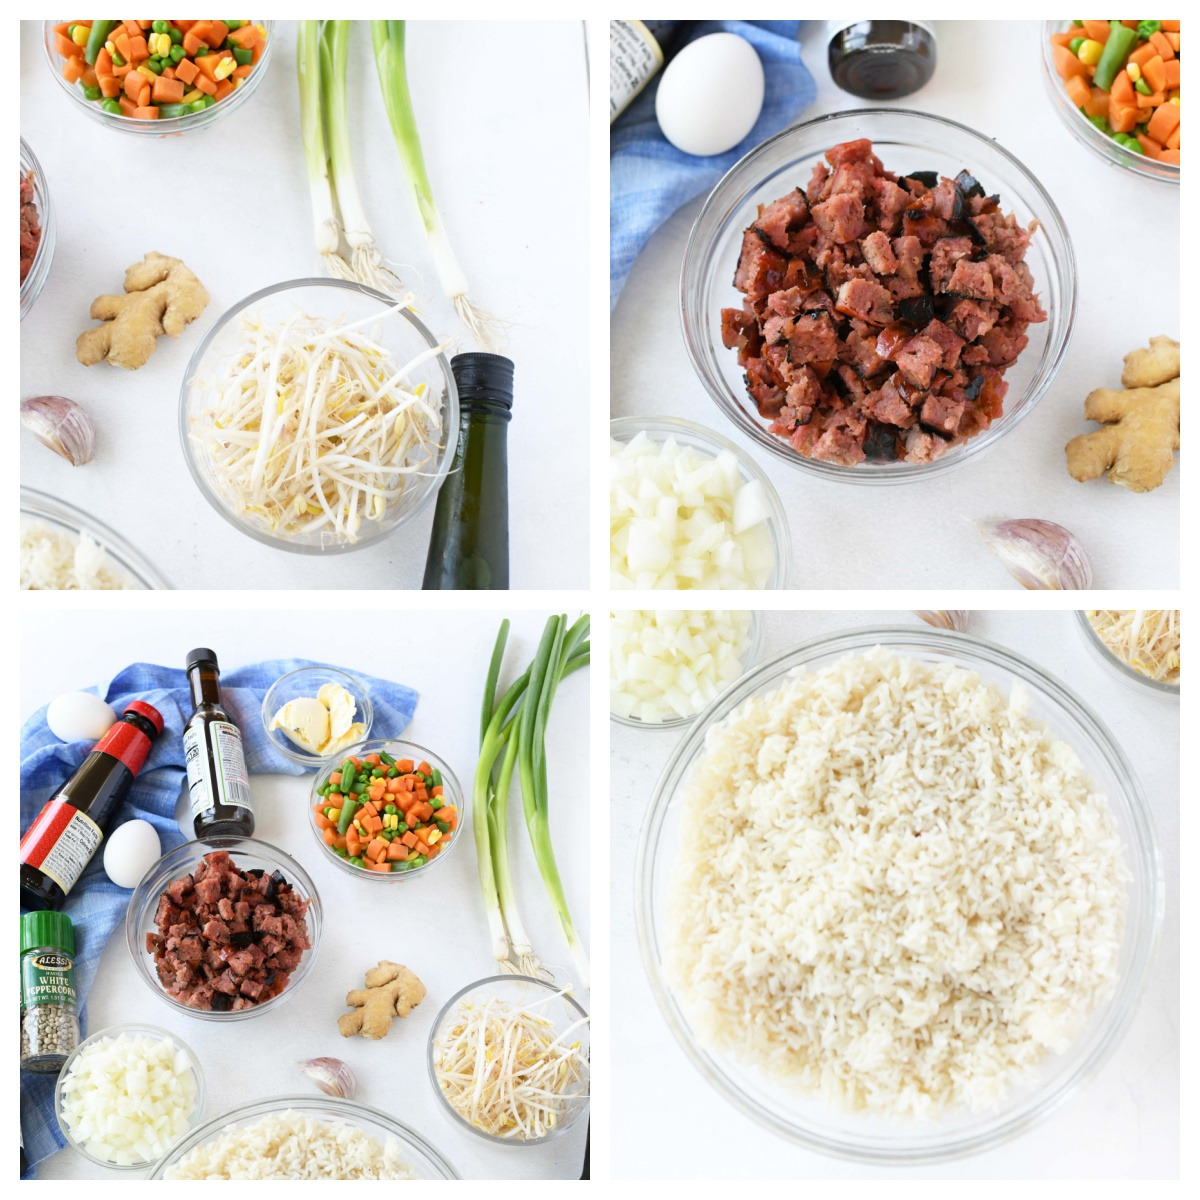 Fried Rice Ingredients in a 4 image collage.